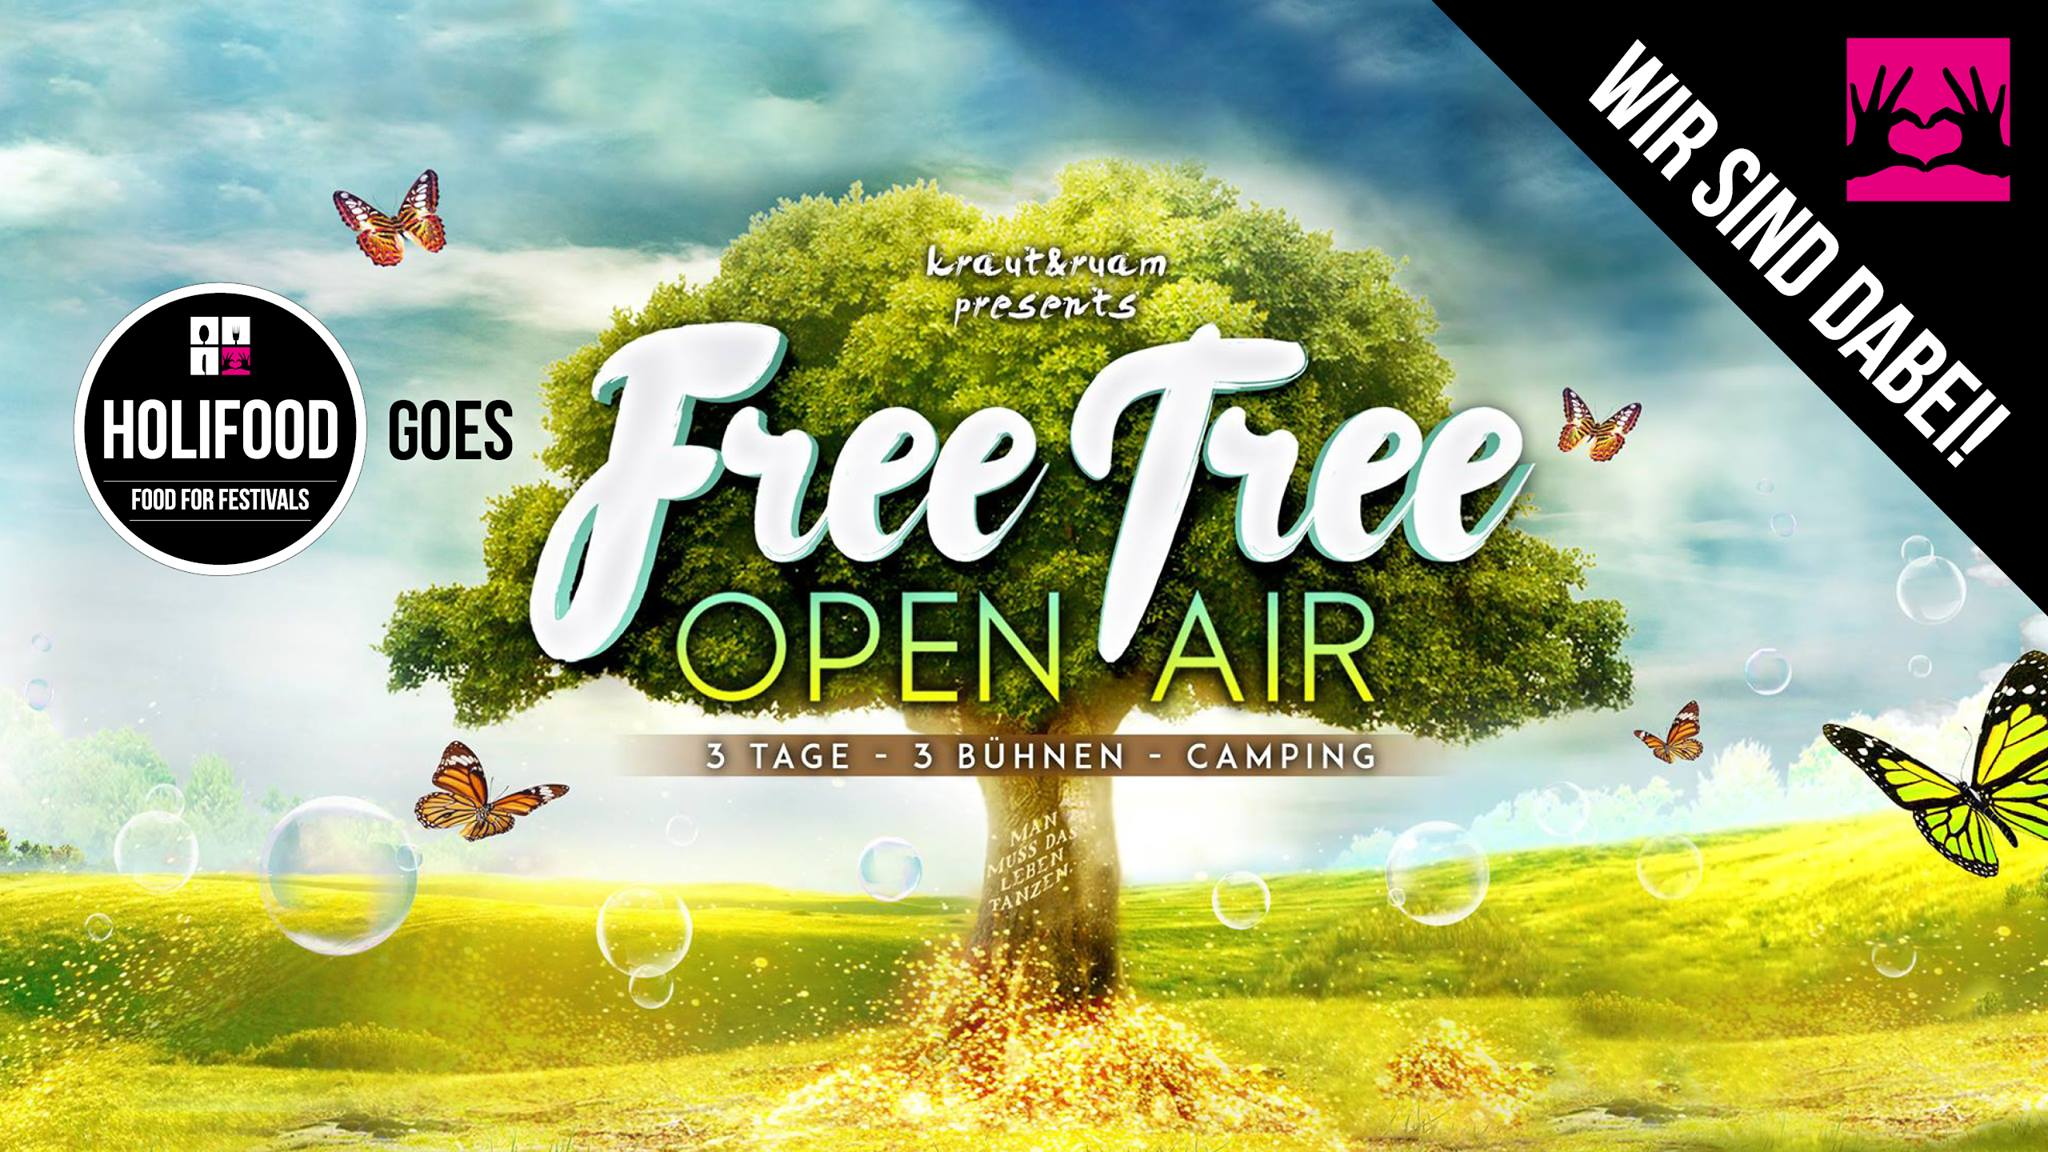 Free-Tree-Open-Air-Holifood-Food-for-Festivals